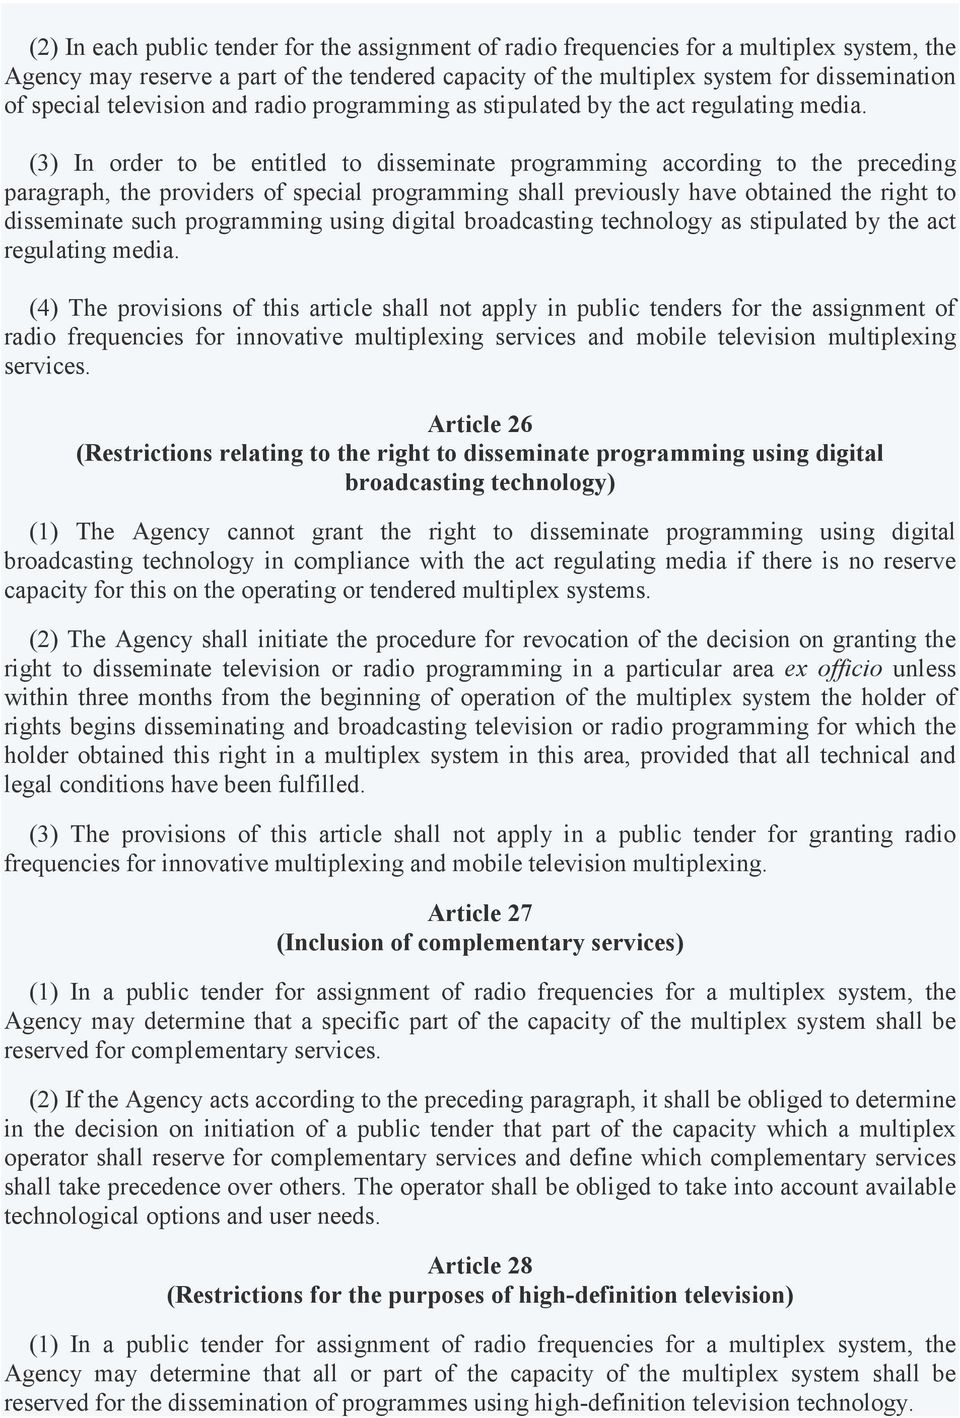 (3) In order to be entitled to disseminate programming according to the preceding paragraph, the providers of special programming shall previously have obtained the right to disseminate such